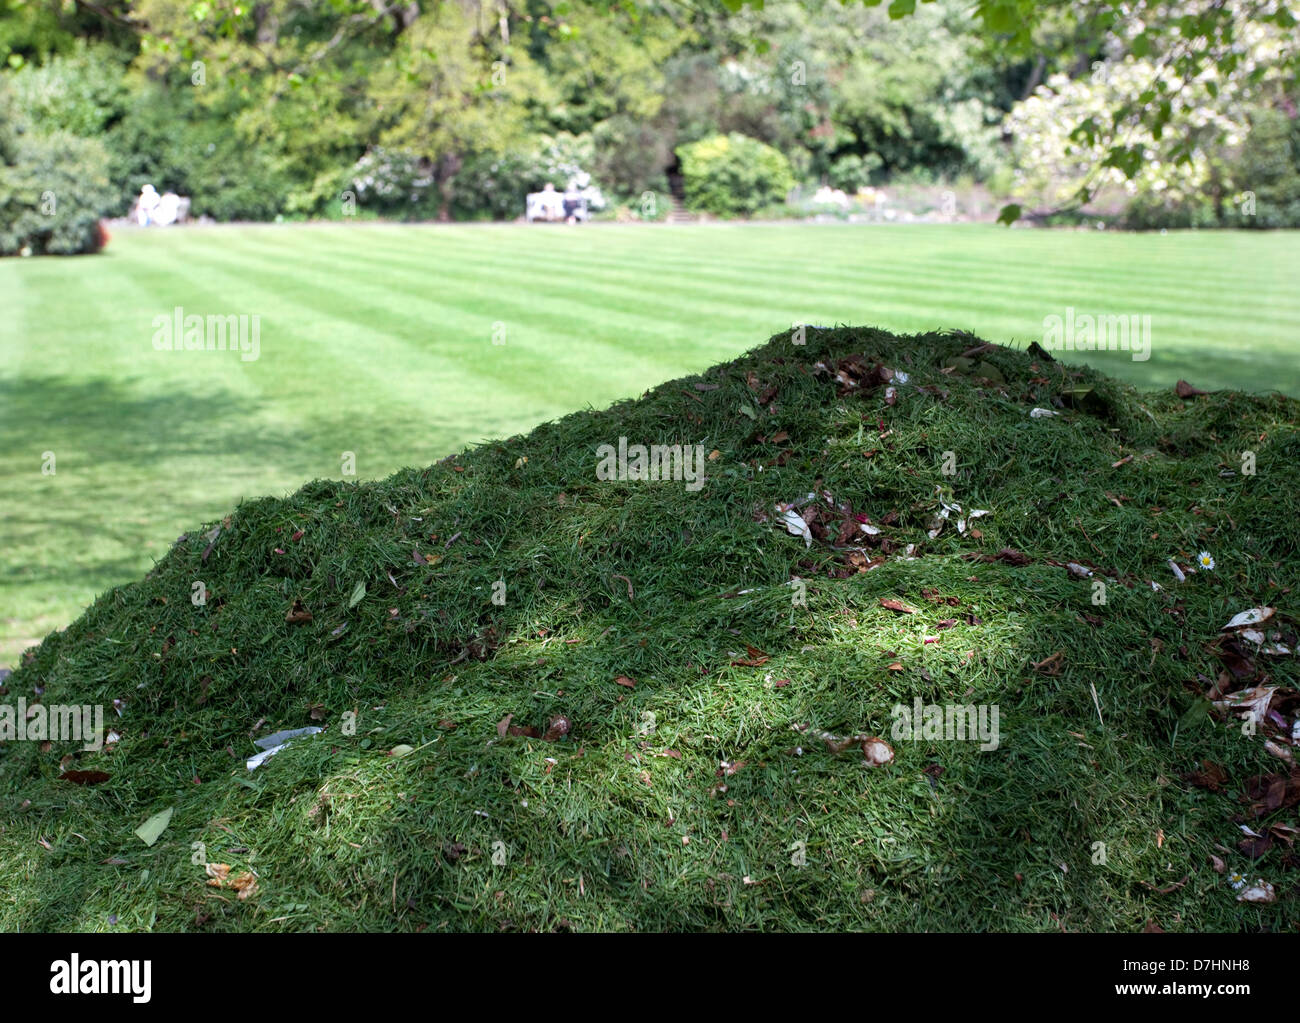 Grass cuttings and newly-mowed lawn in London park - Stock Image